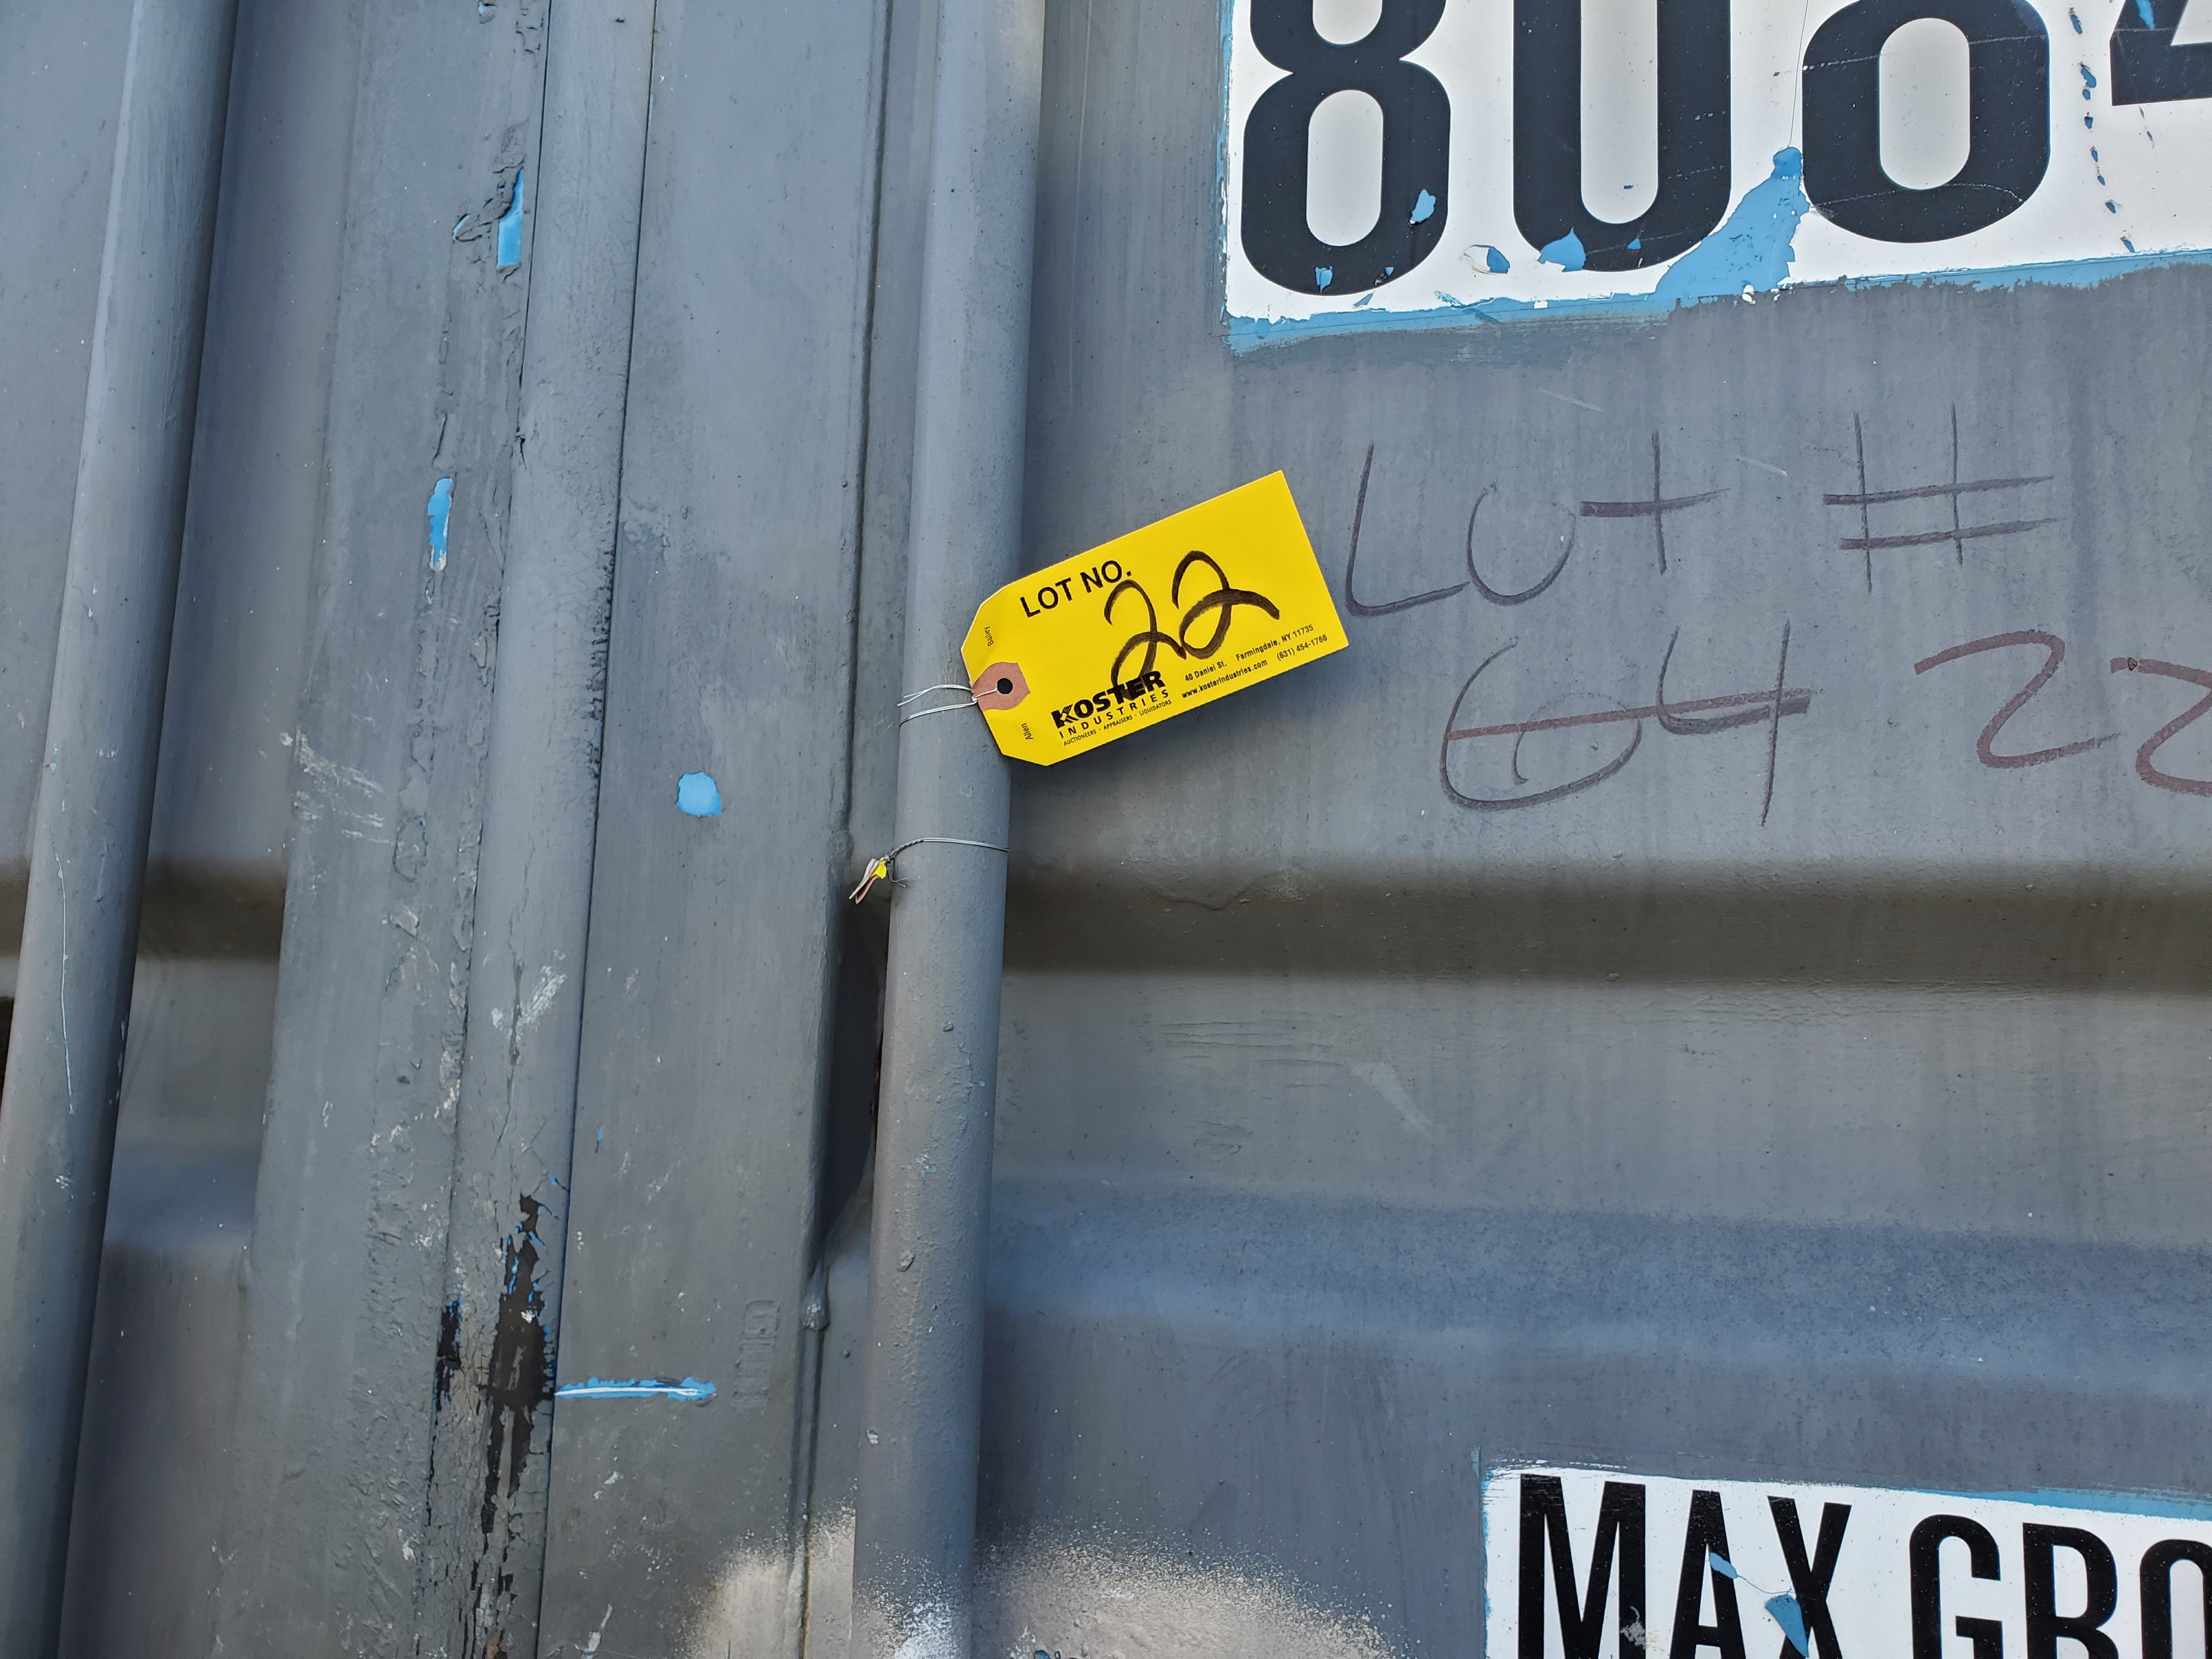 Lot 22 - 20' SHIPPING CONTAINER [LOCATED @ 6 CANAL ROAD, PELHAM, NY (BRONX)]